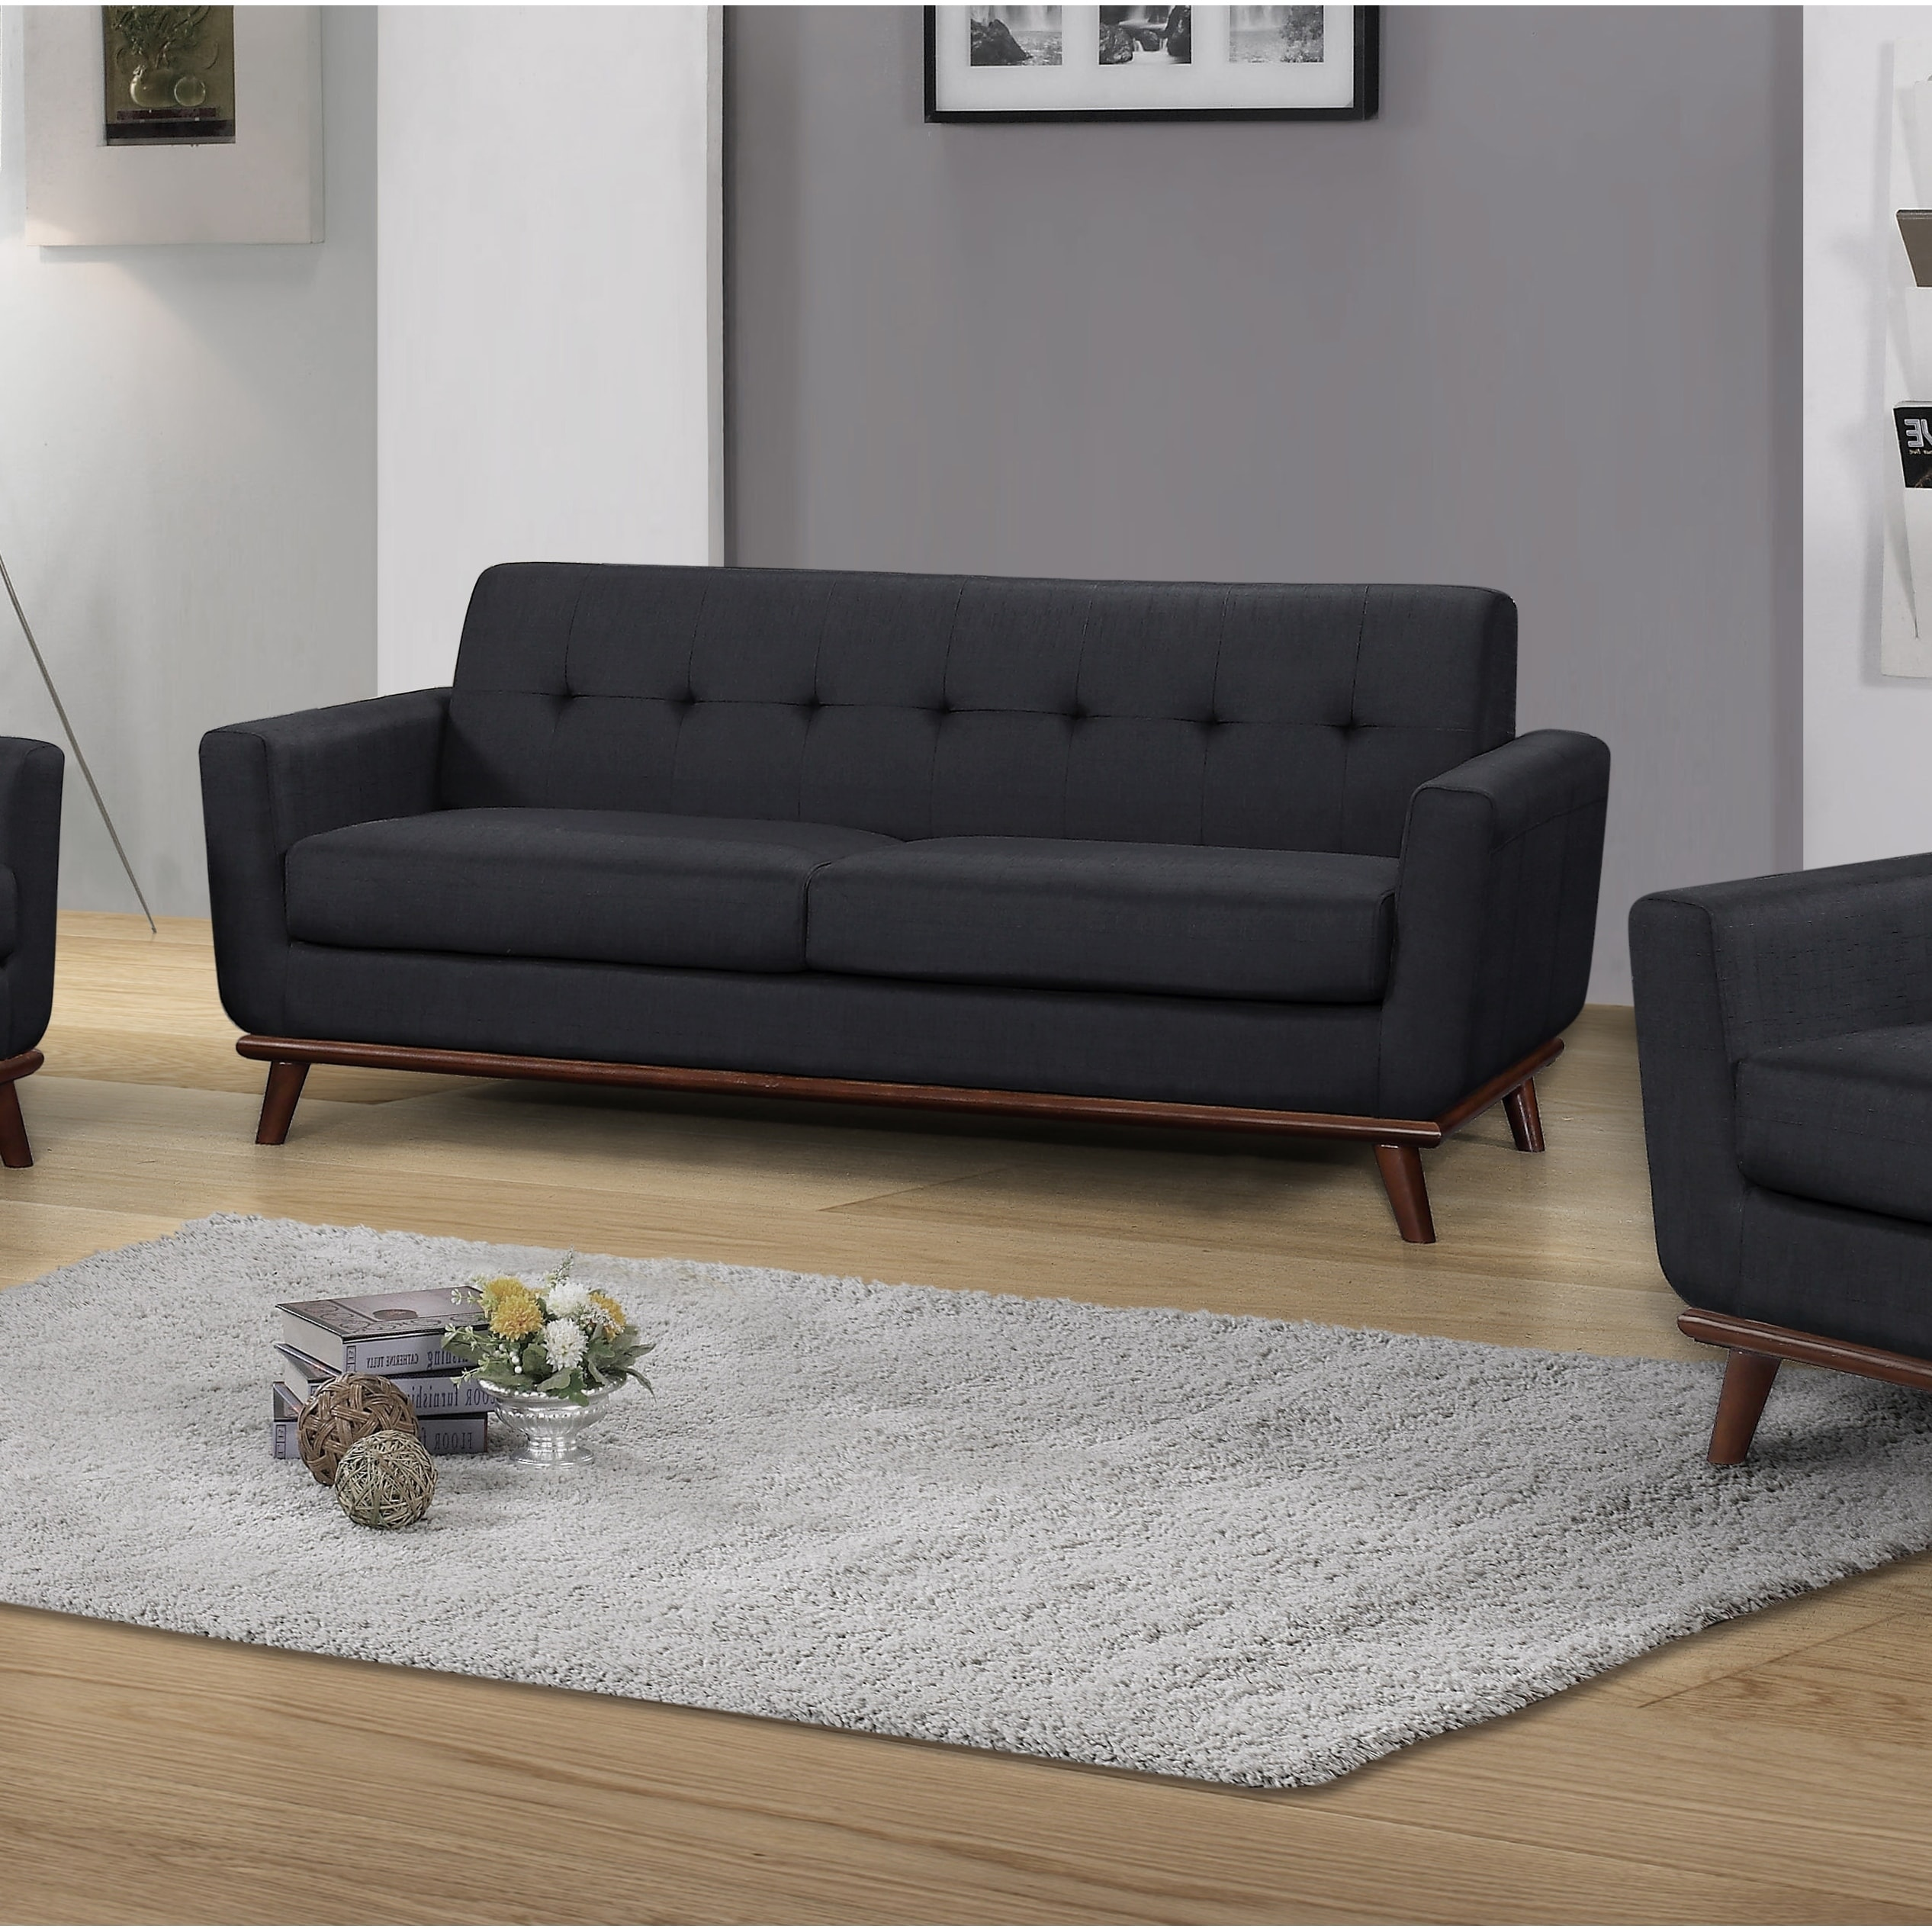 Best Master Furniture C106 Upholstered Sofa Free Shipping Today 20192523